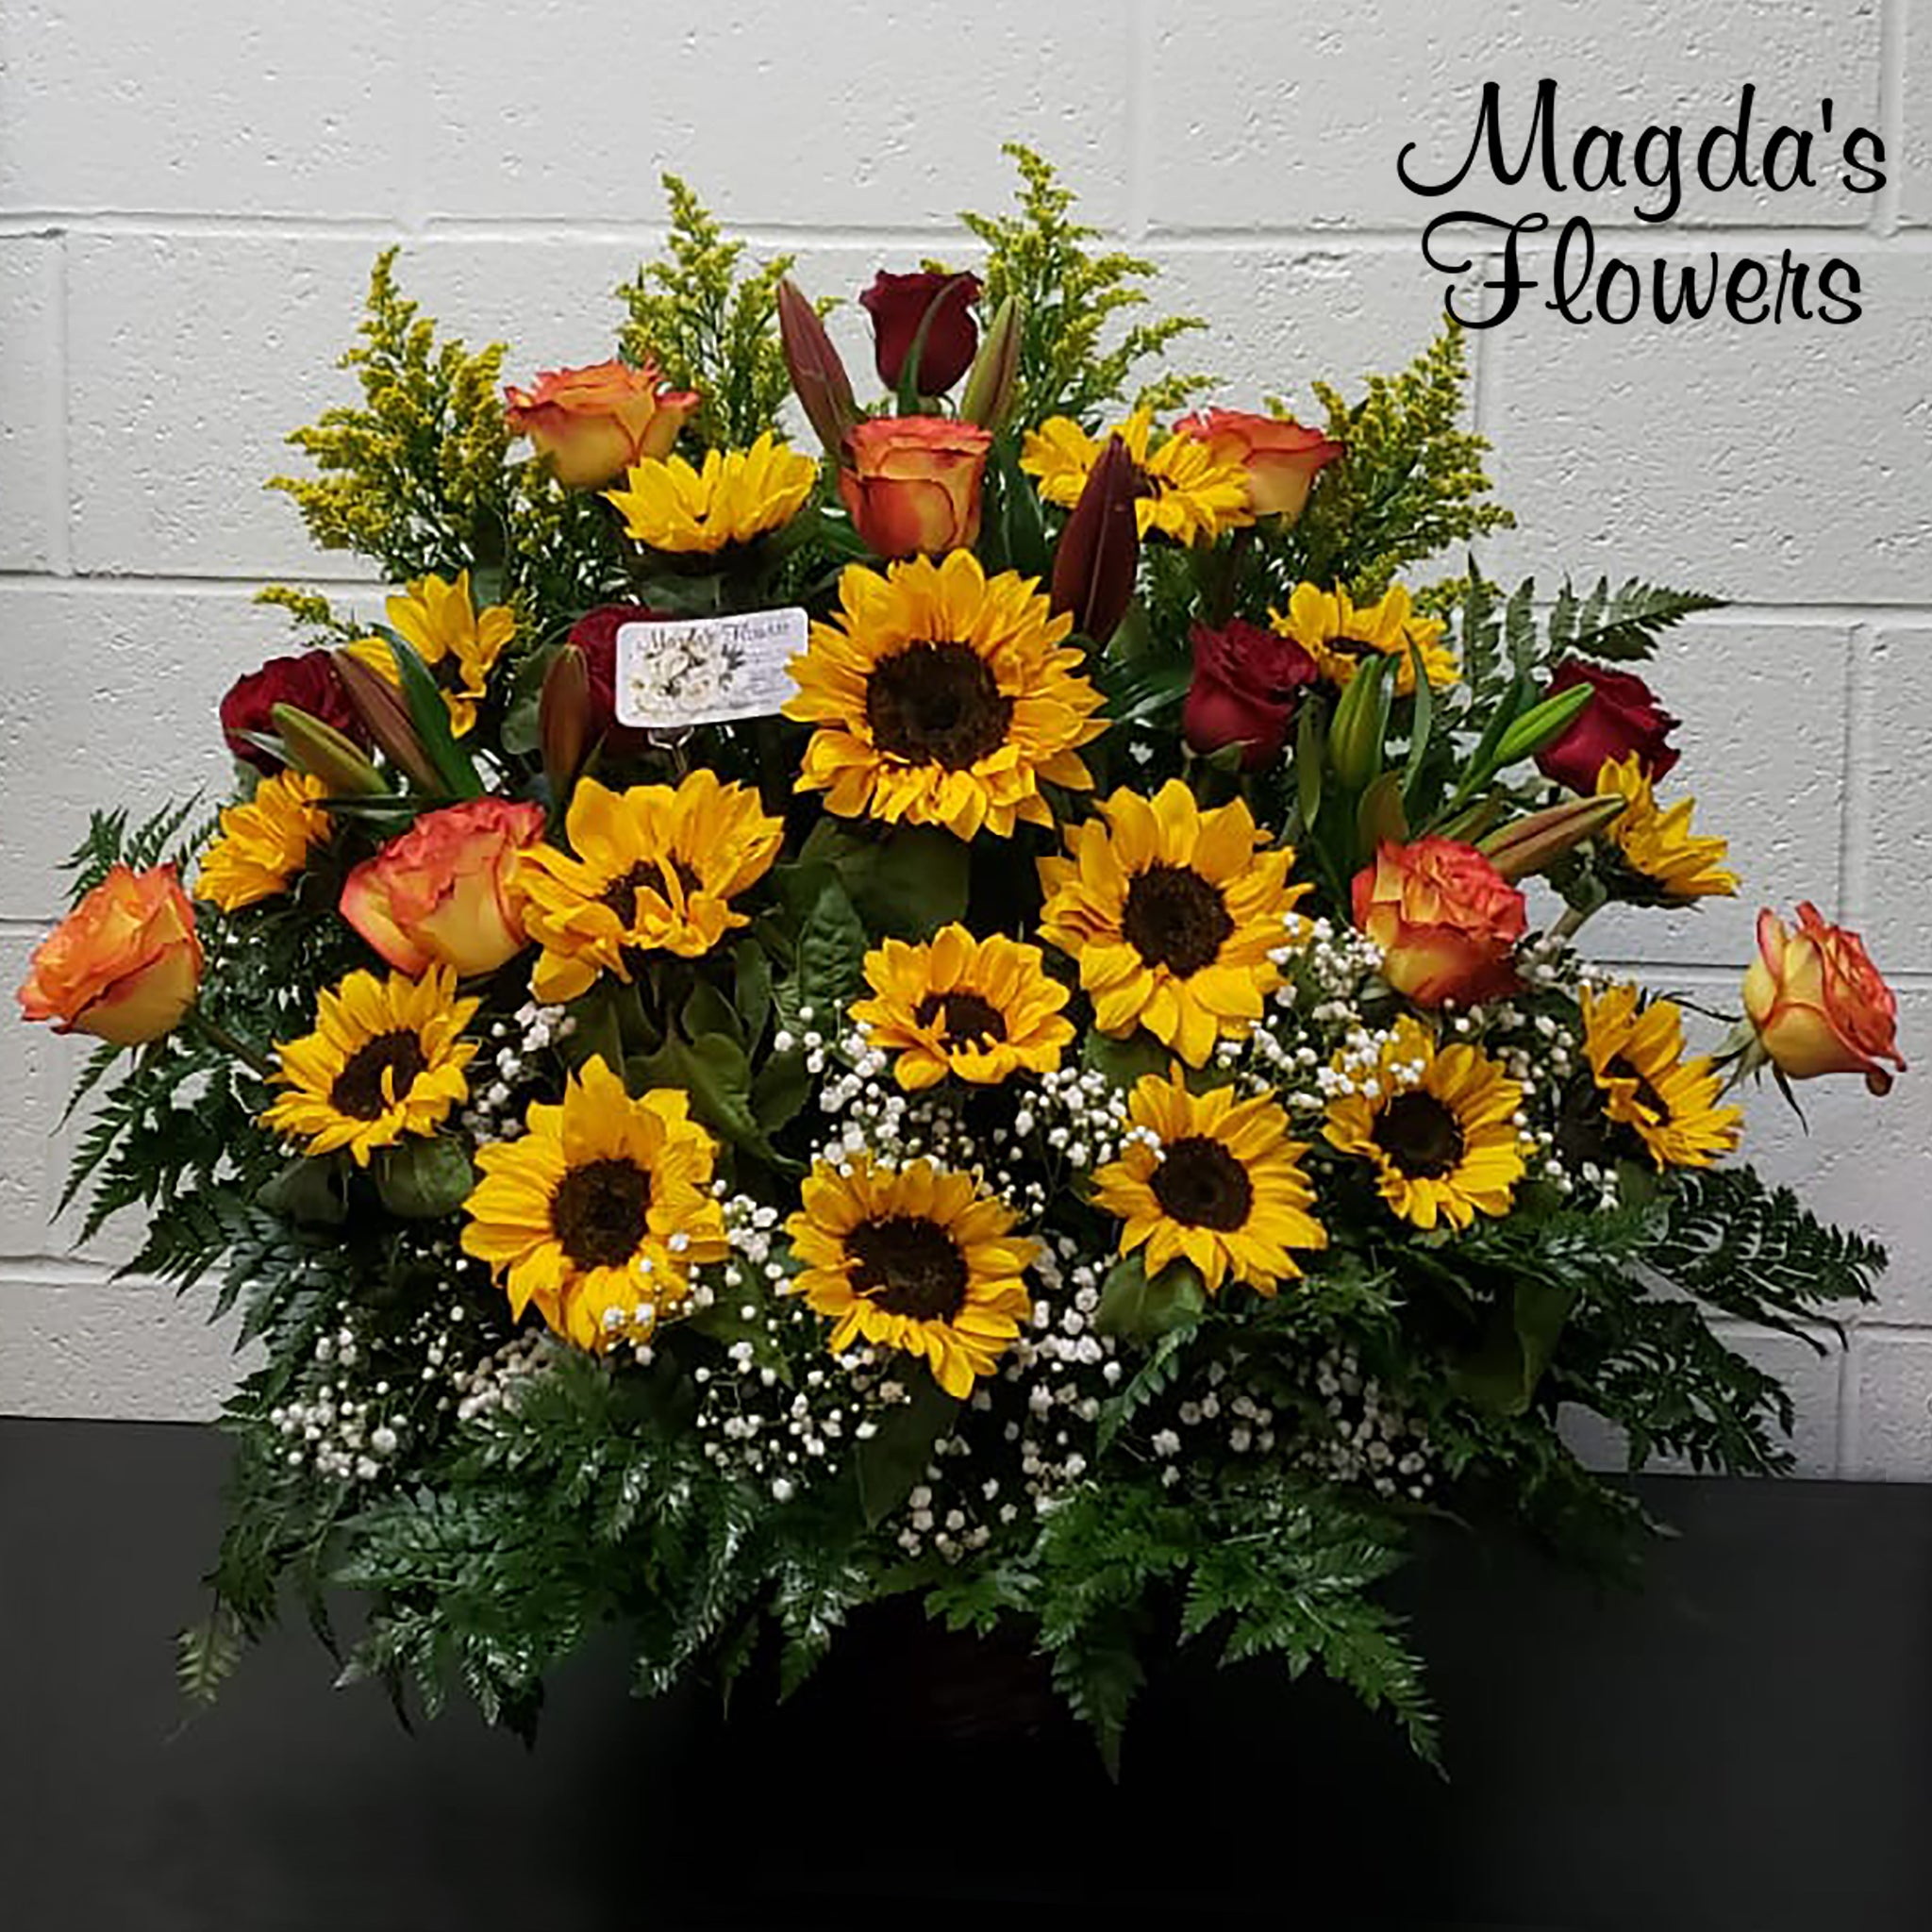 Beautiful sunflowers, roses and burgundy lilies in a large basket.